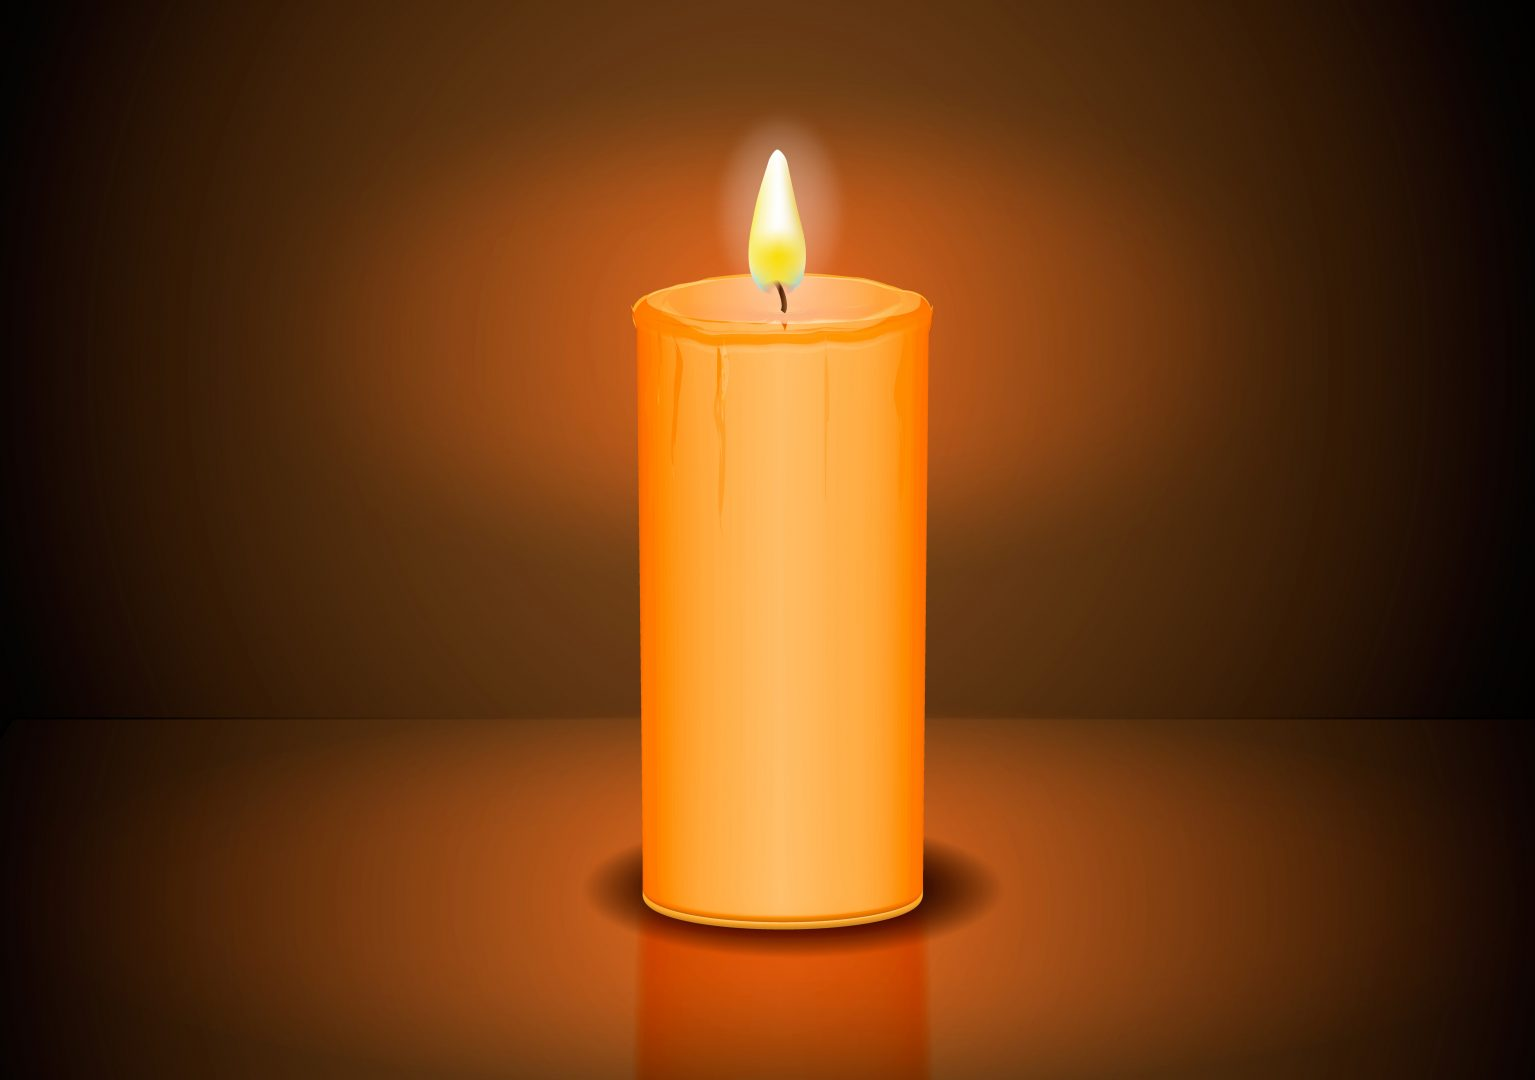 closeup of burning candle in dark